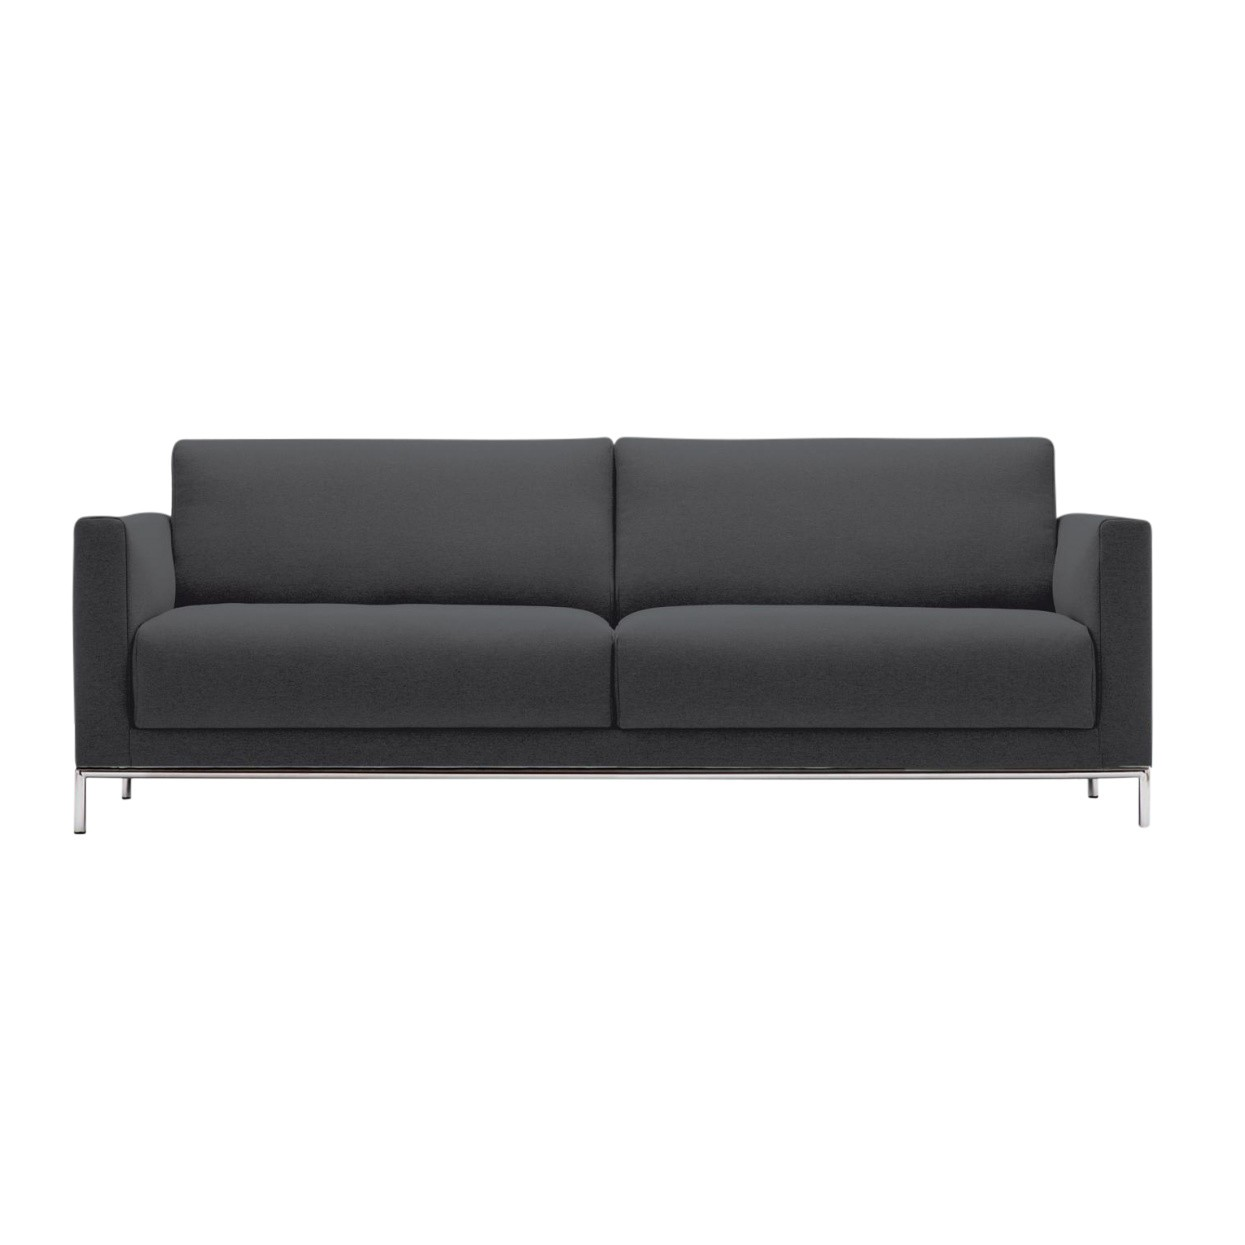 Rolf Benz Sofa Freistil Freistil 141 3 Seater Sofa Frame Chrome